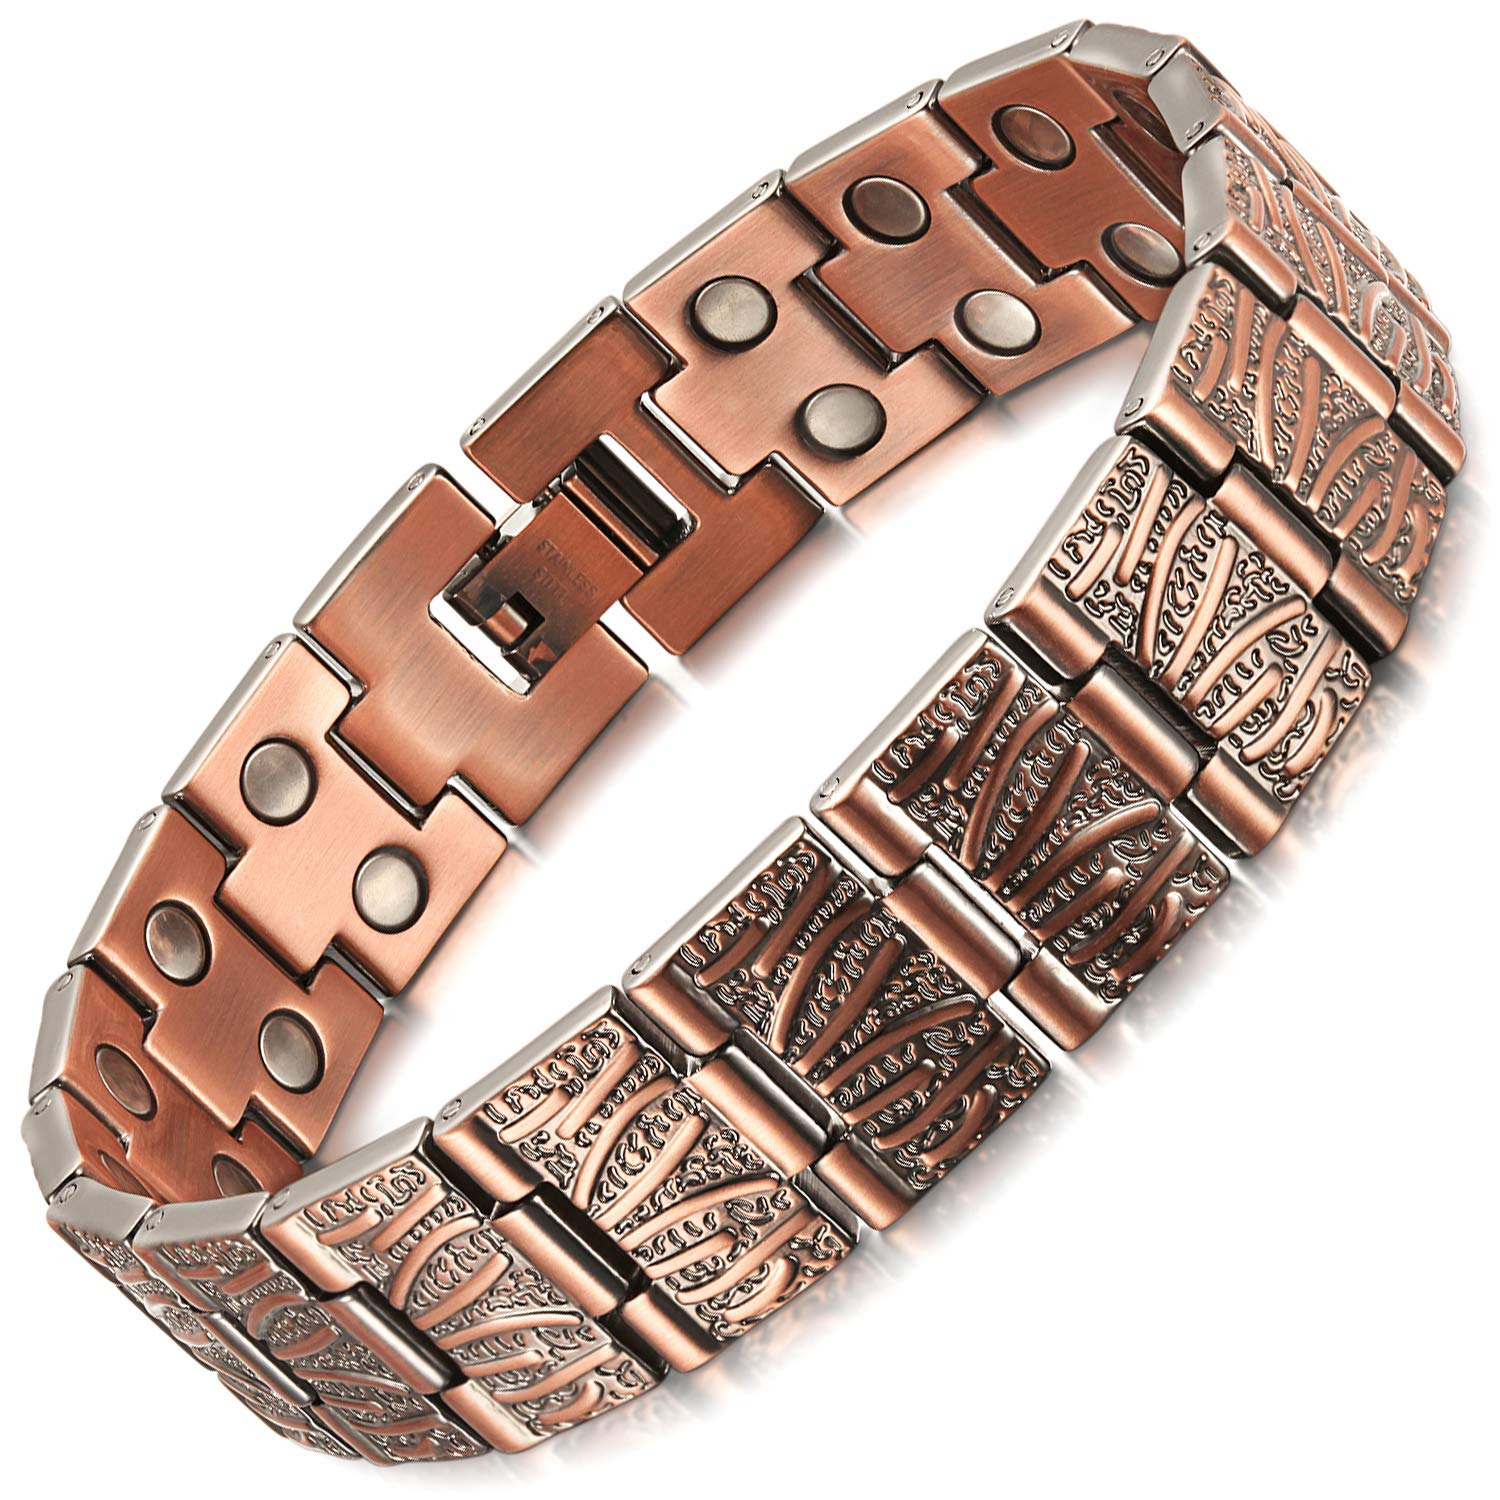 Rainso Mens Double Row Pure Copper Magnetic Therapy Bracelet Pain Relief for Arthritis Adjustable